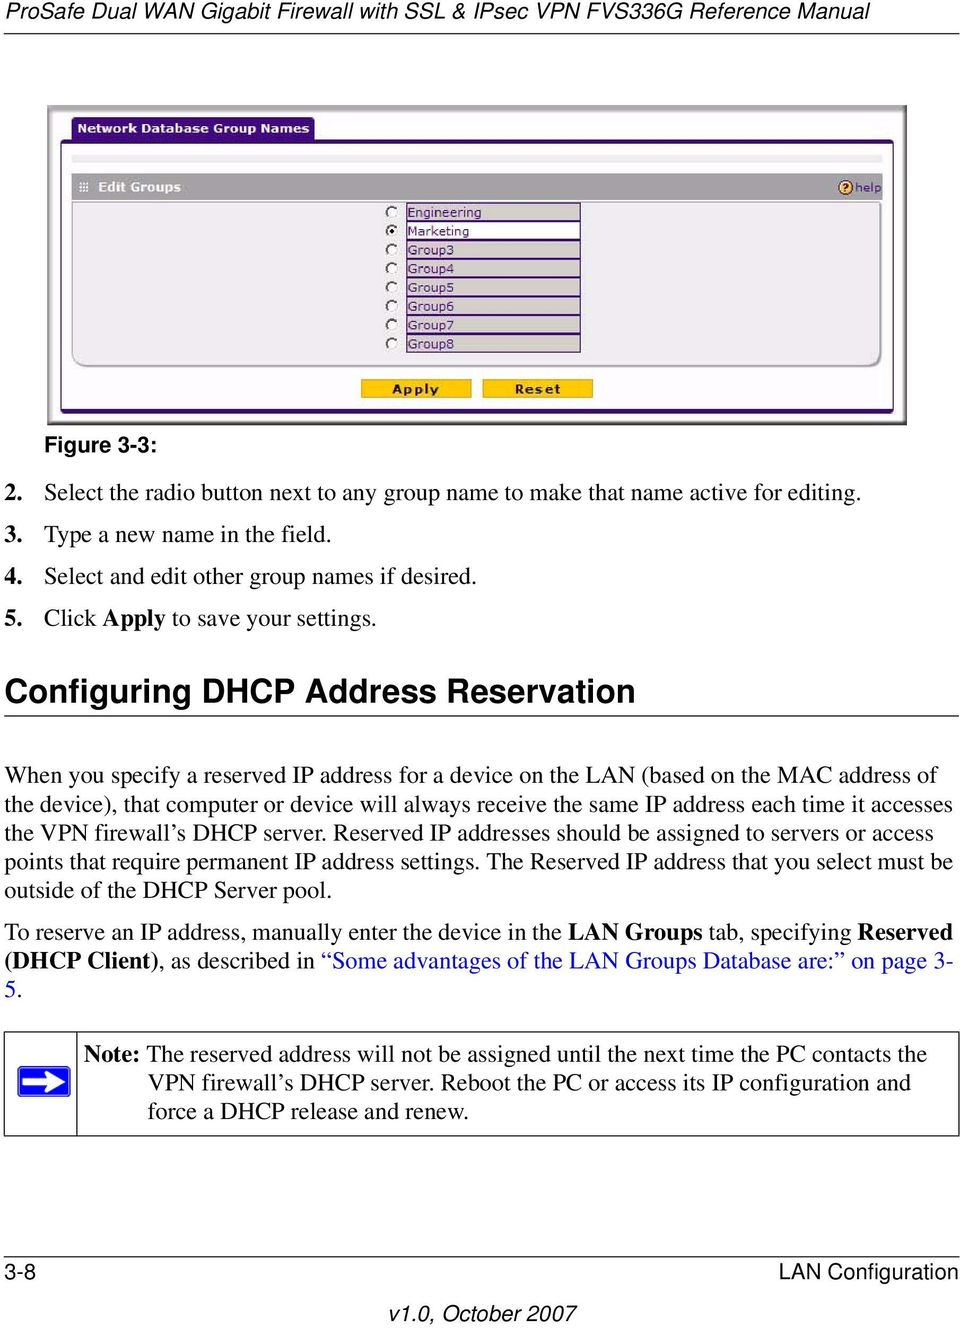 Configuring DHCP Address Reservation When you specify a reserved IP address for a device on the LAN (based on the MAC address of the device), that computer or device will always receive the same IP